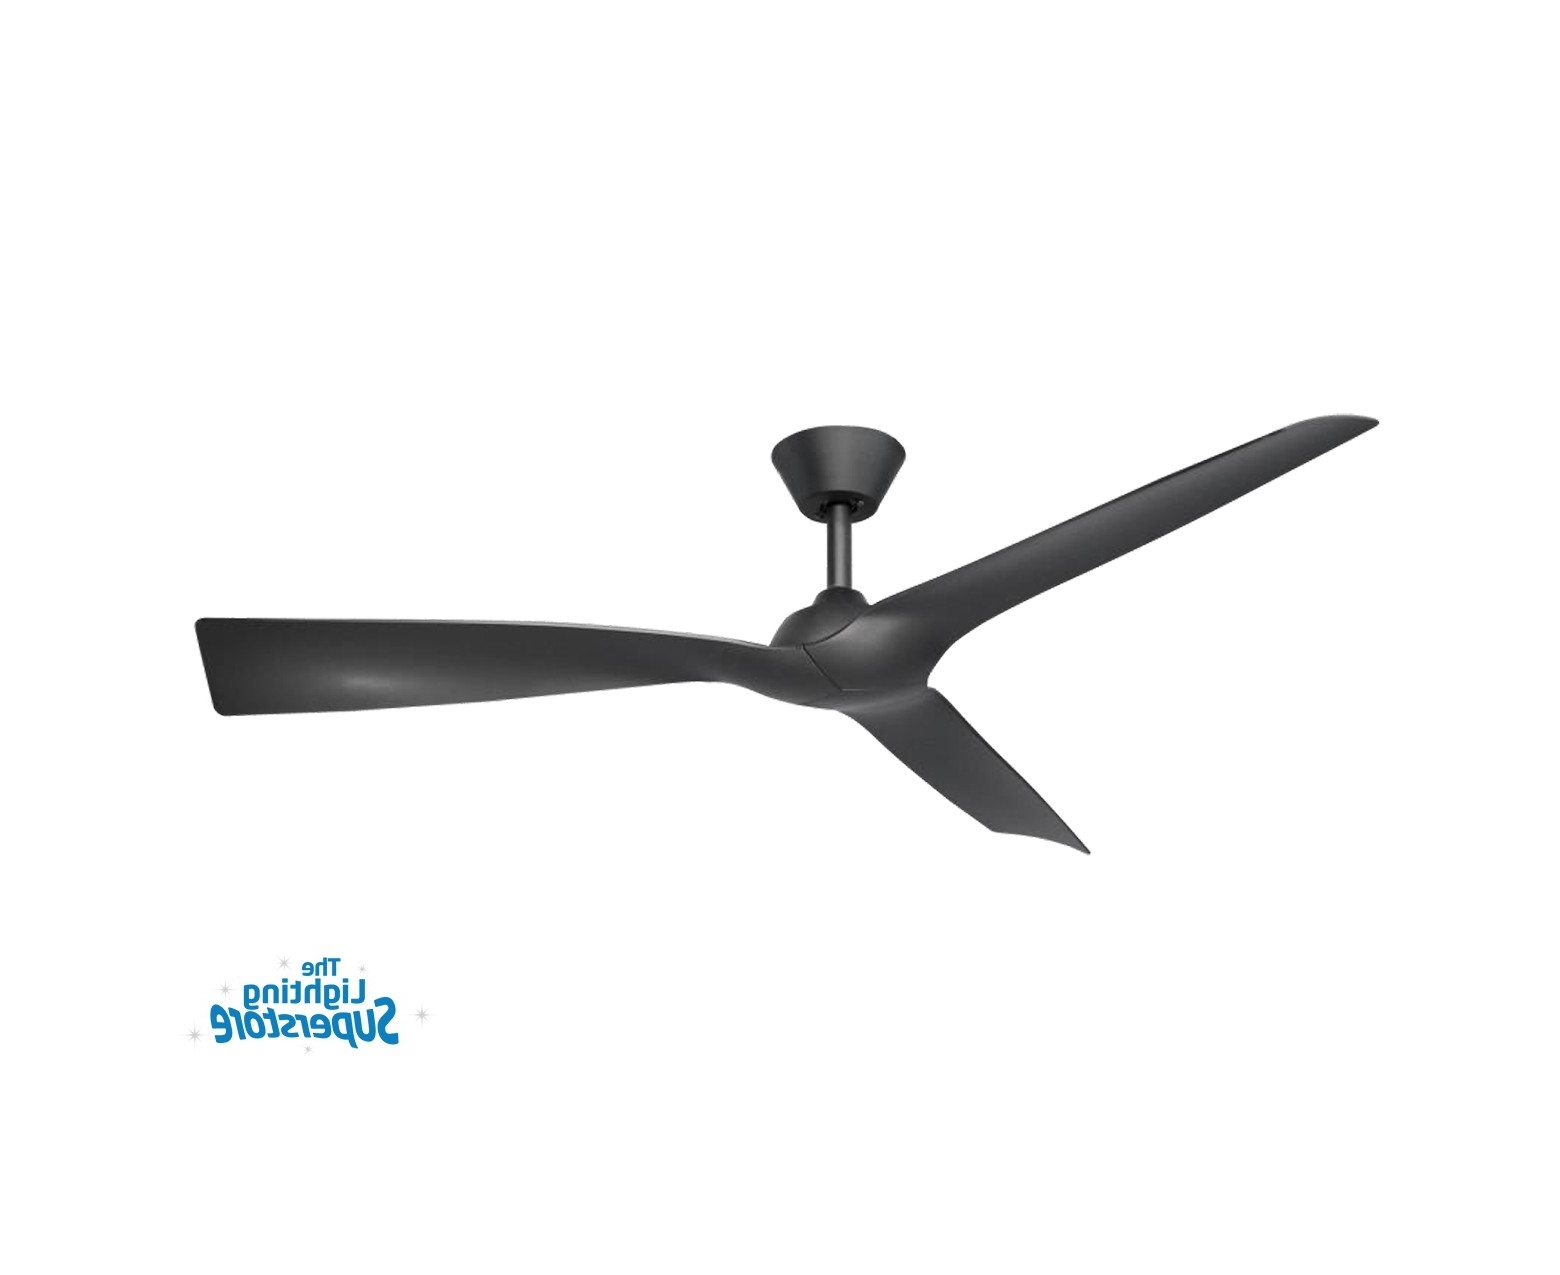 "Well Known Gold Coast Outdoor Ceiling Fans Intended For 52"" Trinidad Ii Black Ceiling Fan – Plastic Moulded Blade Ceiling Fan (View 19 of 20)"